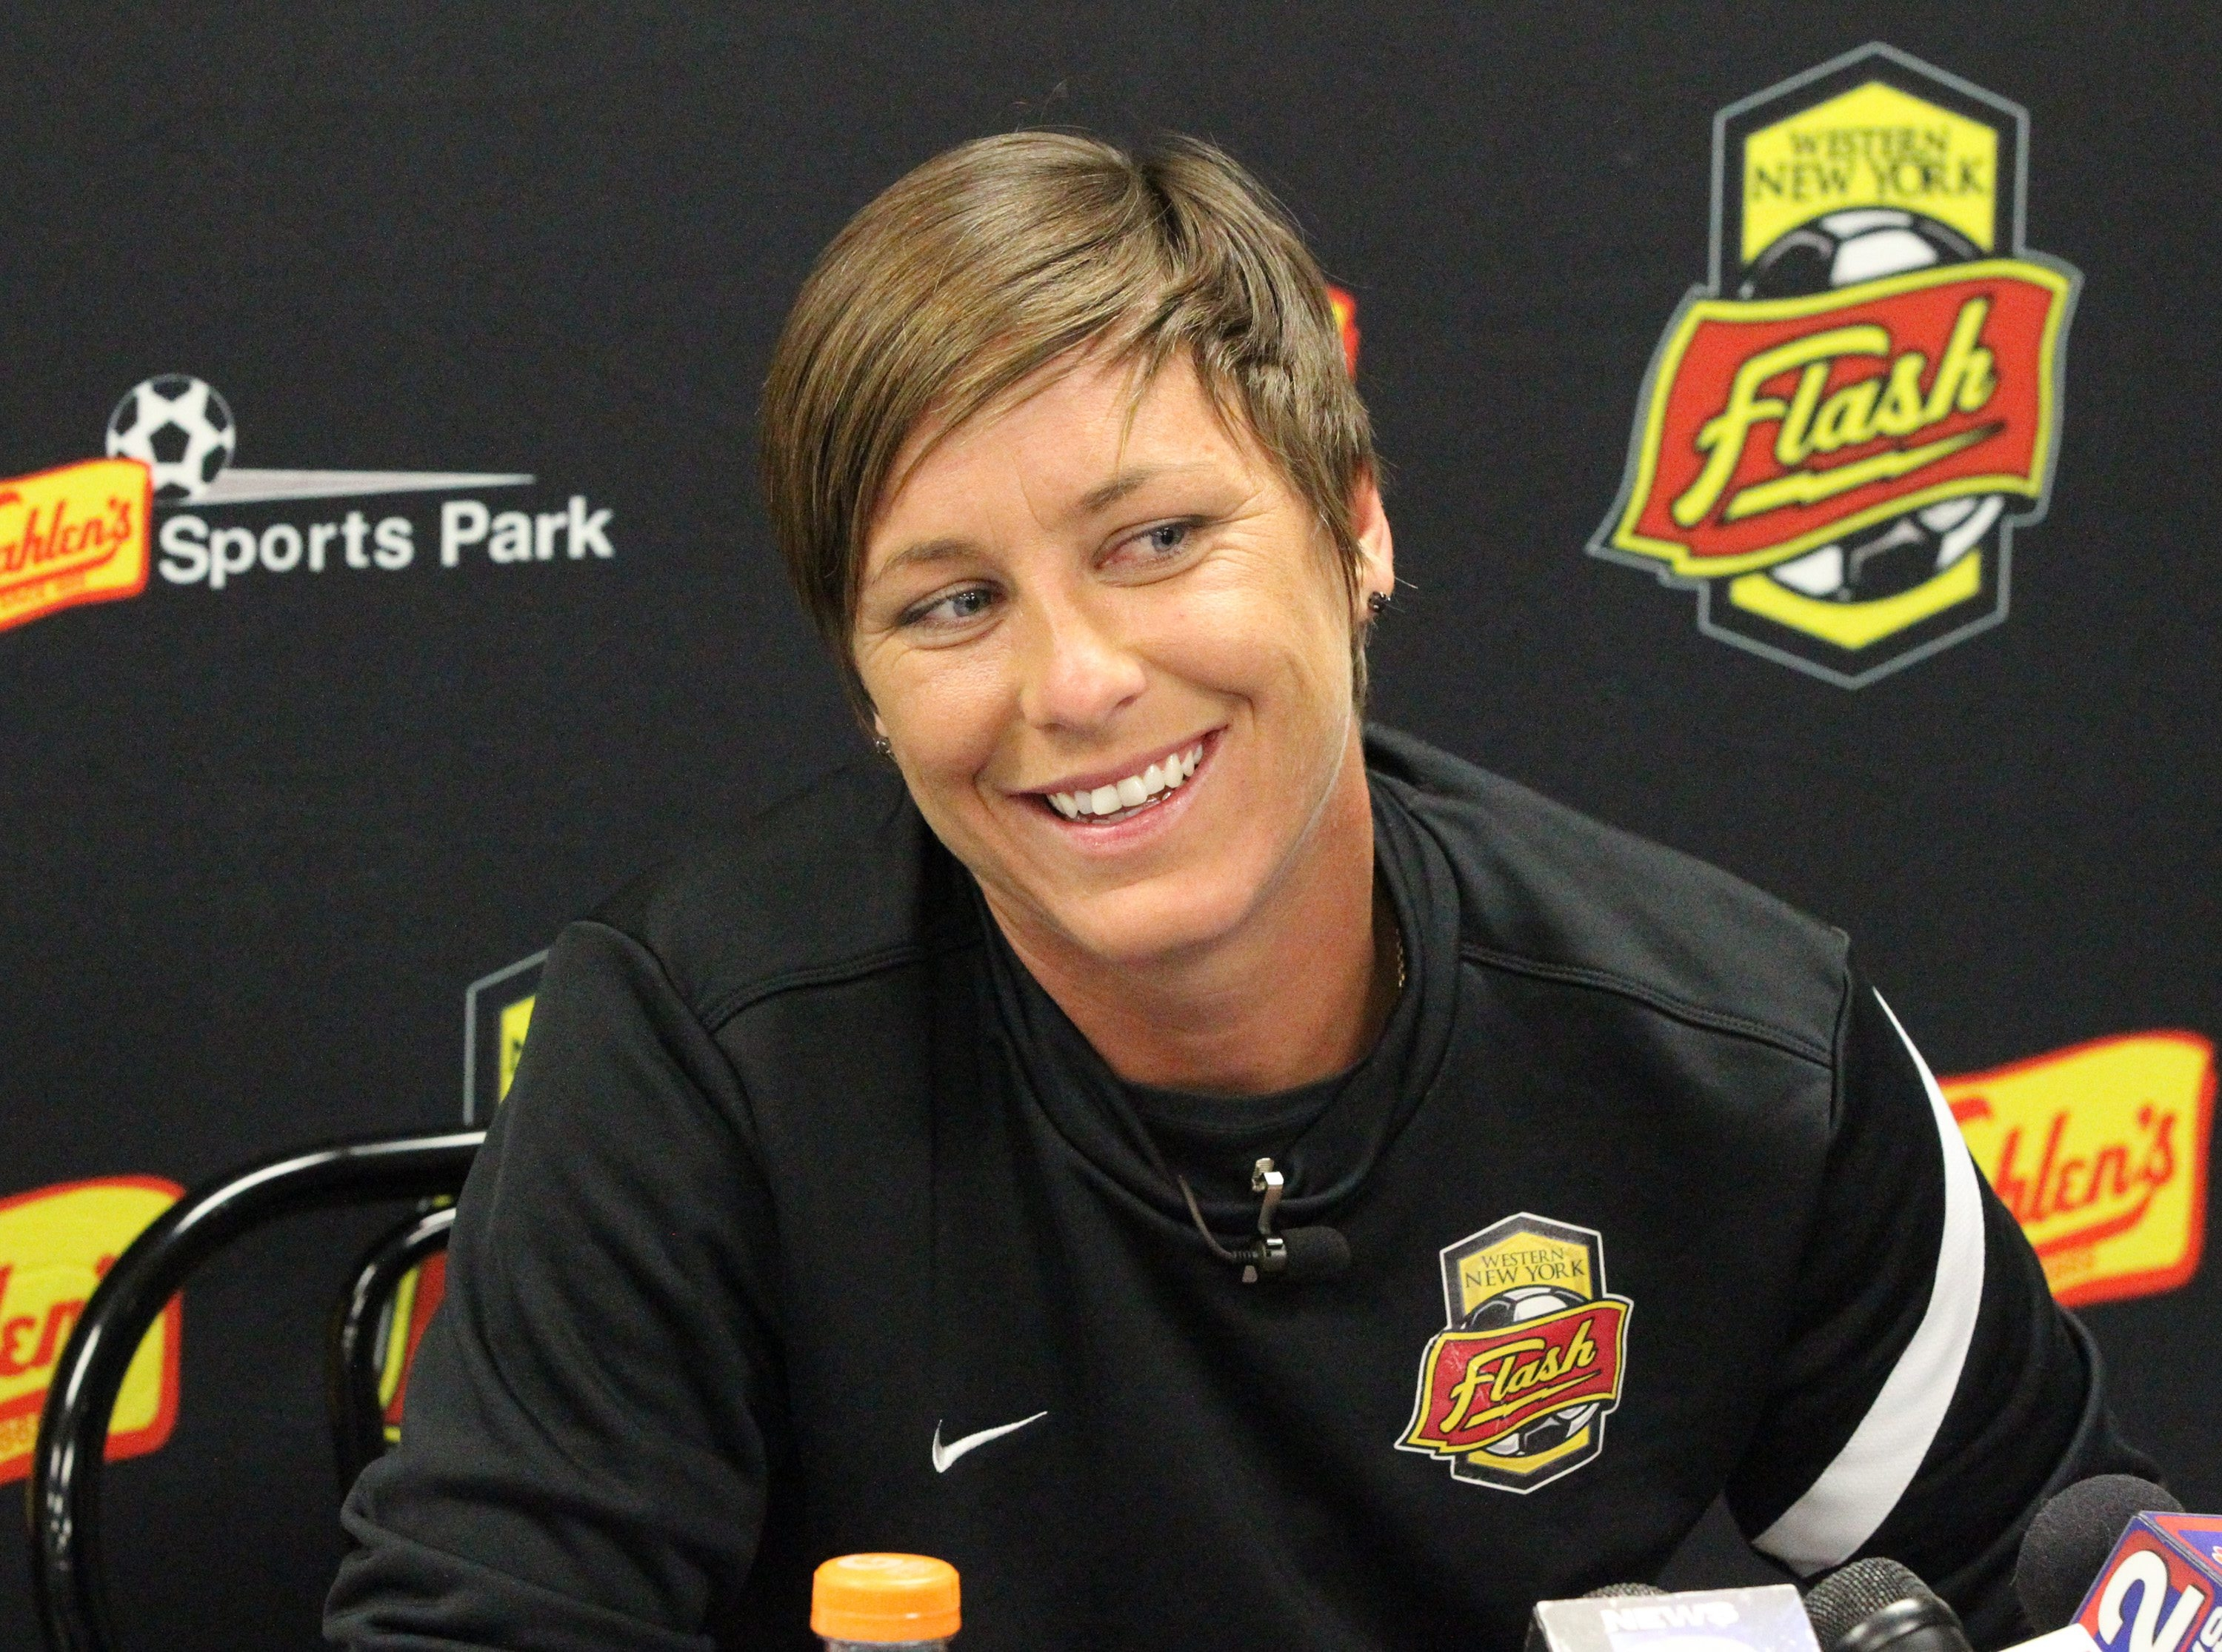 Abby Wambach talked about her record-setting night during a press conference at Sahlen's Sports Park in Elma Friday.